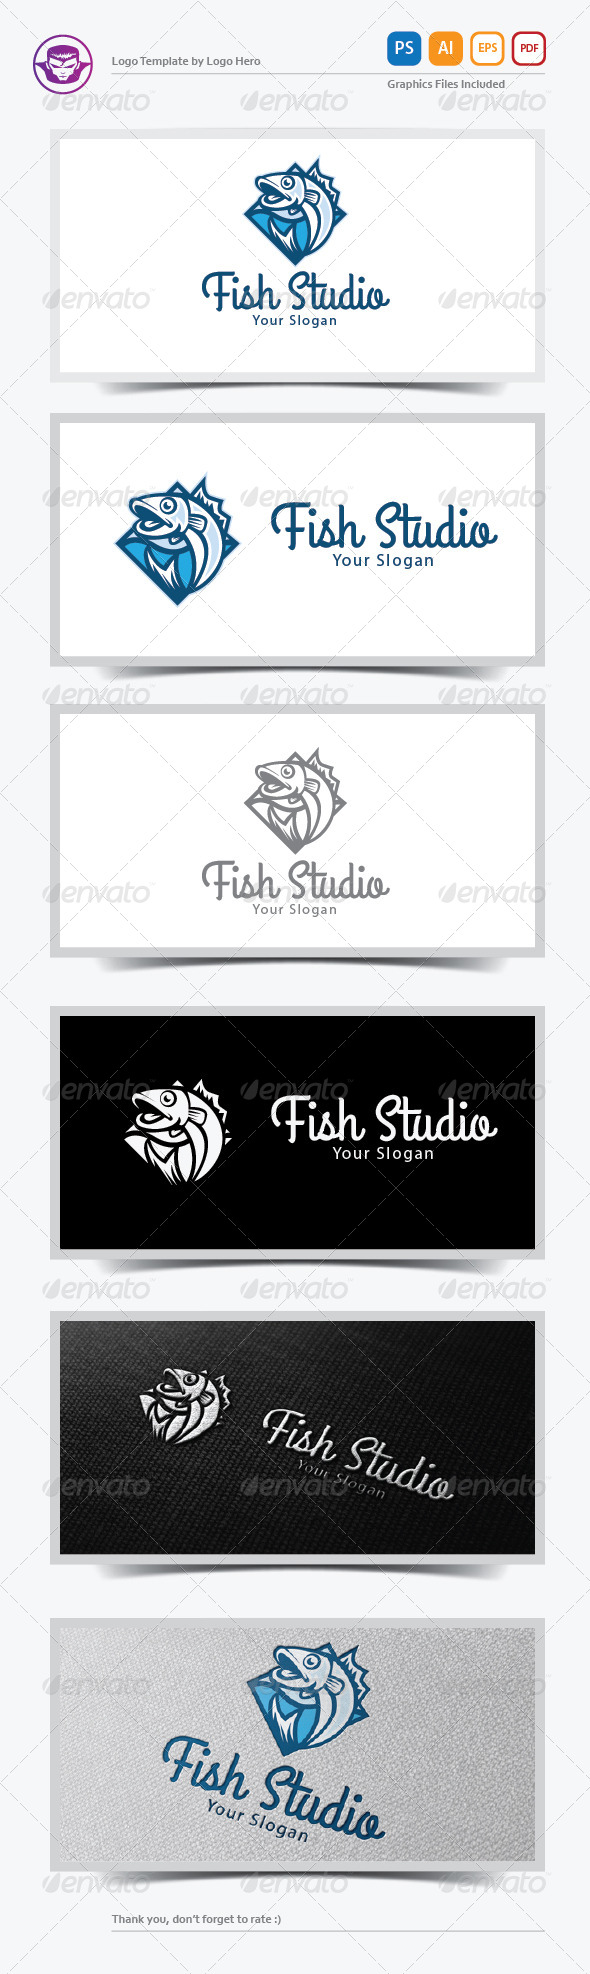 GraphicRiver Fish Studio Logo Template 6383502